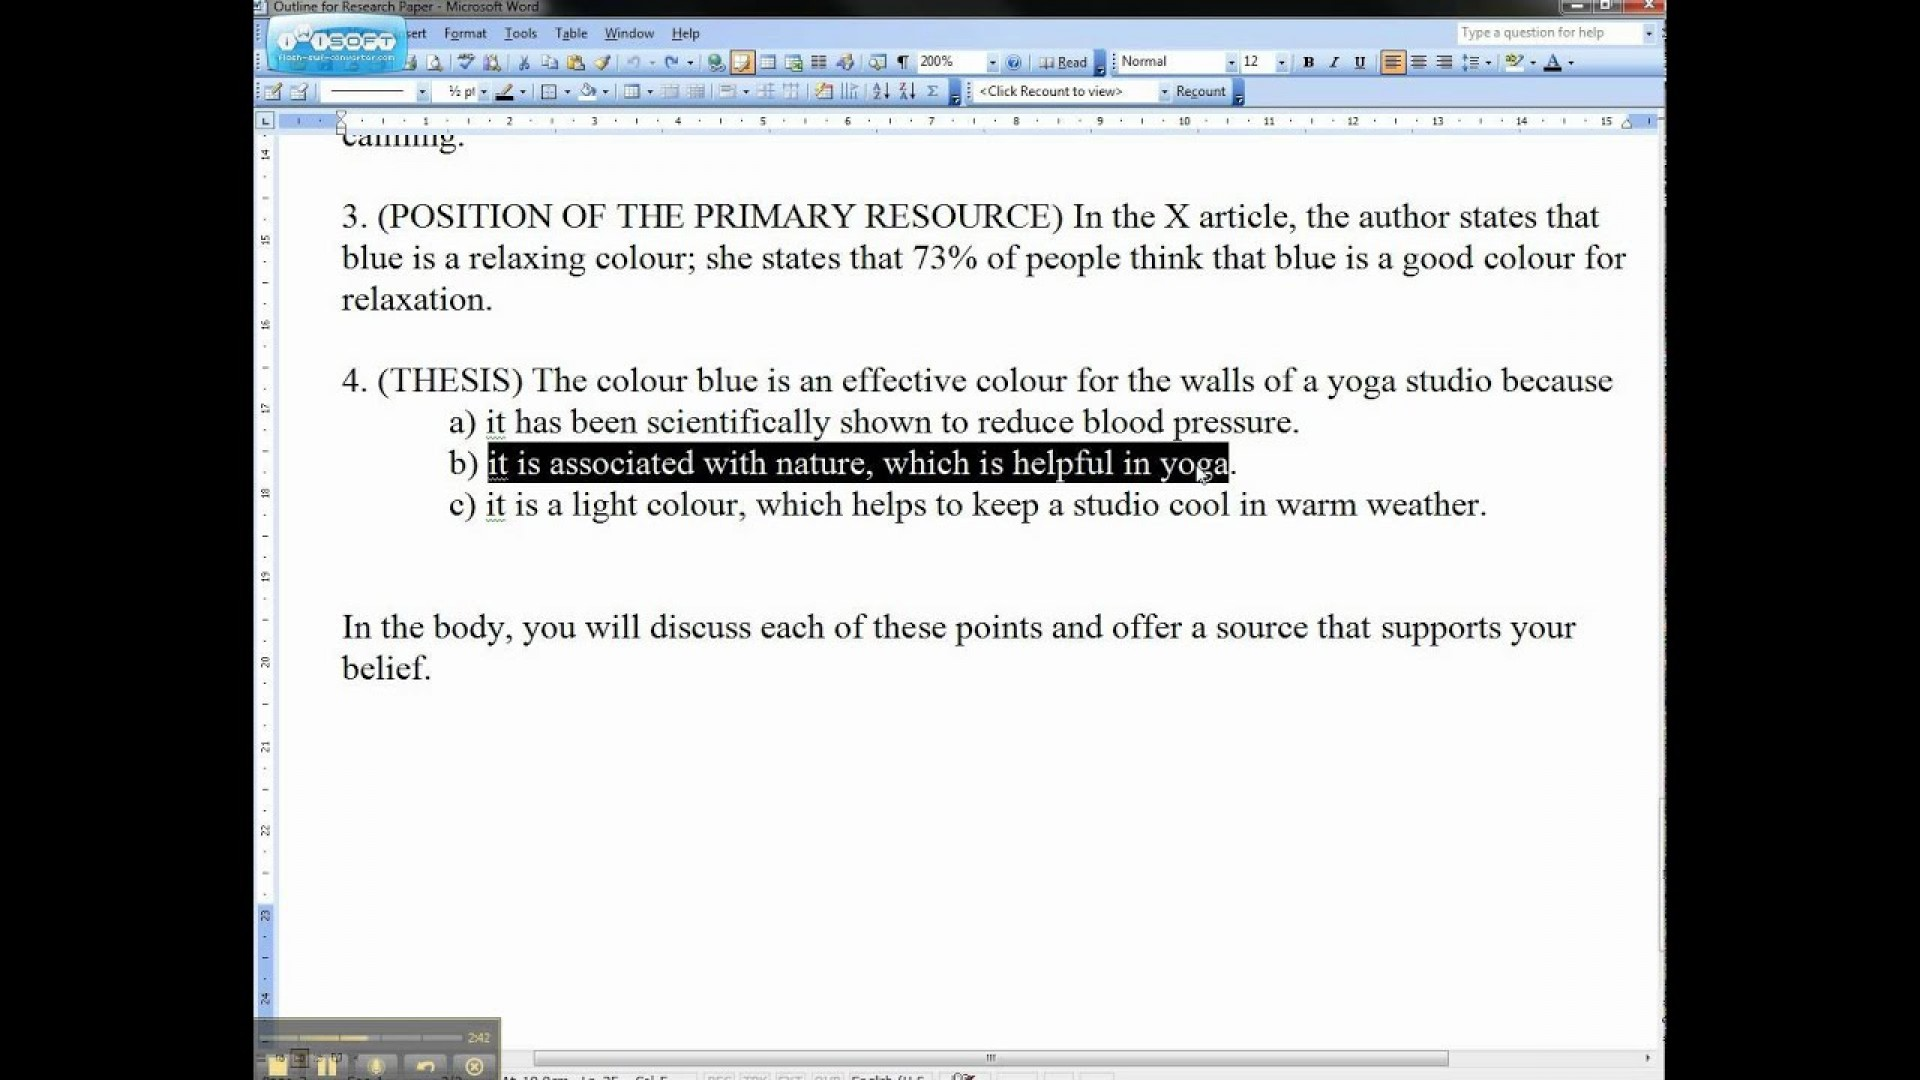 025 Thesis Statement Essay Maxresdefault Stirring Definition Examples For Argumentative Template Example 1920